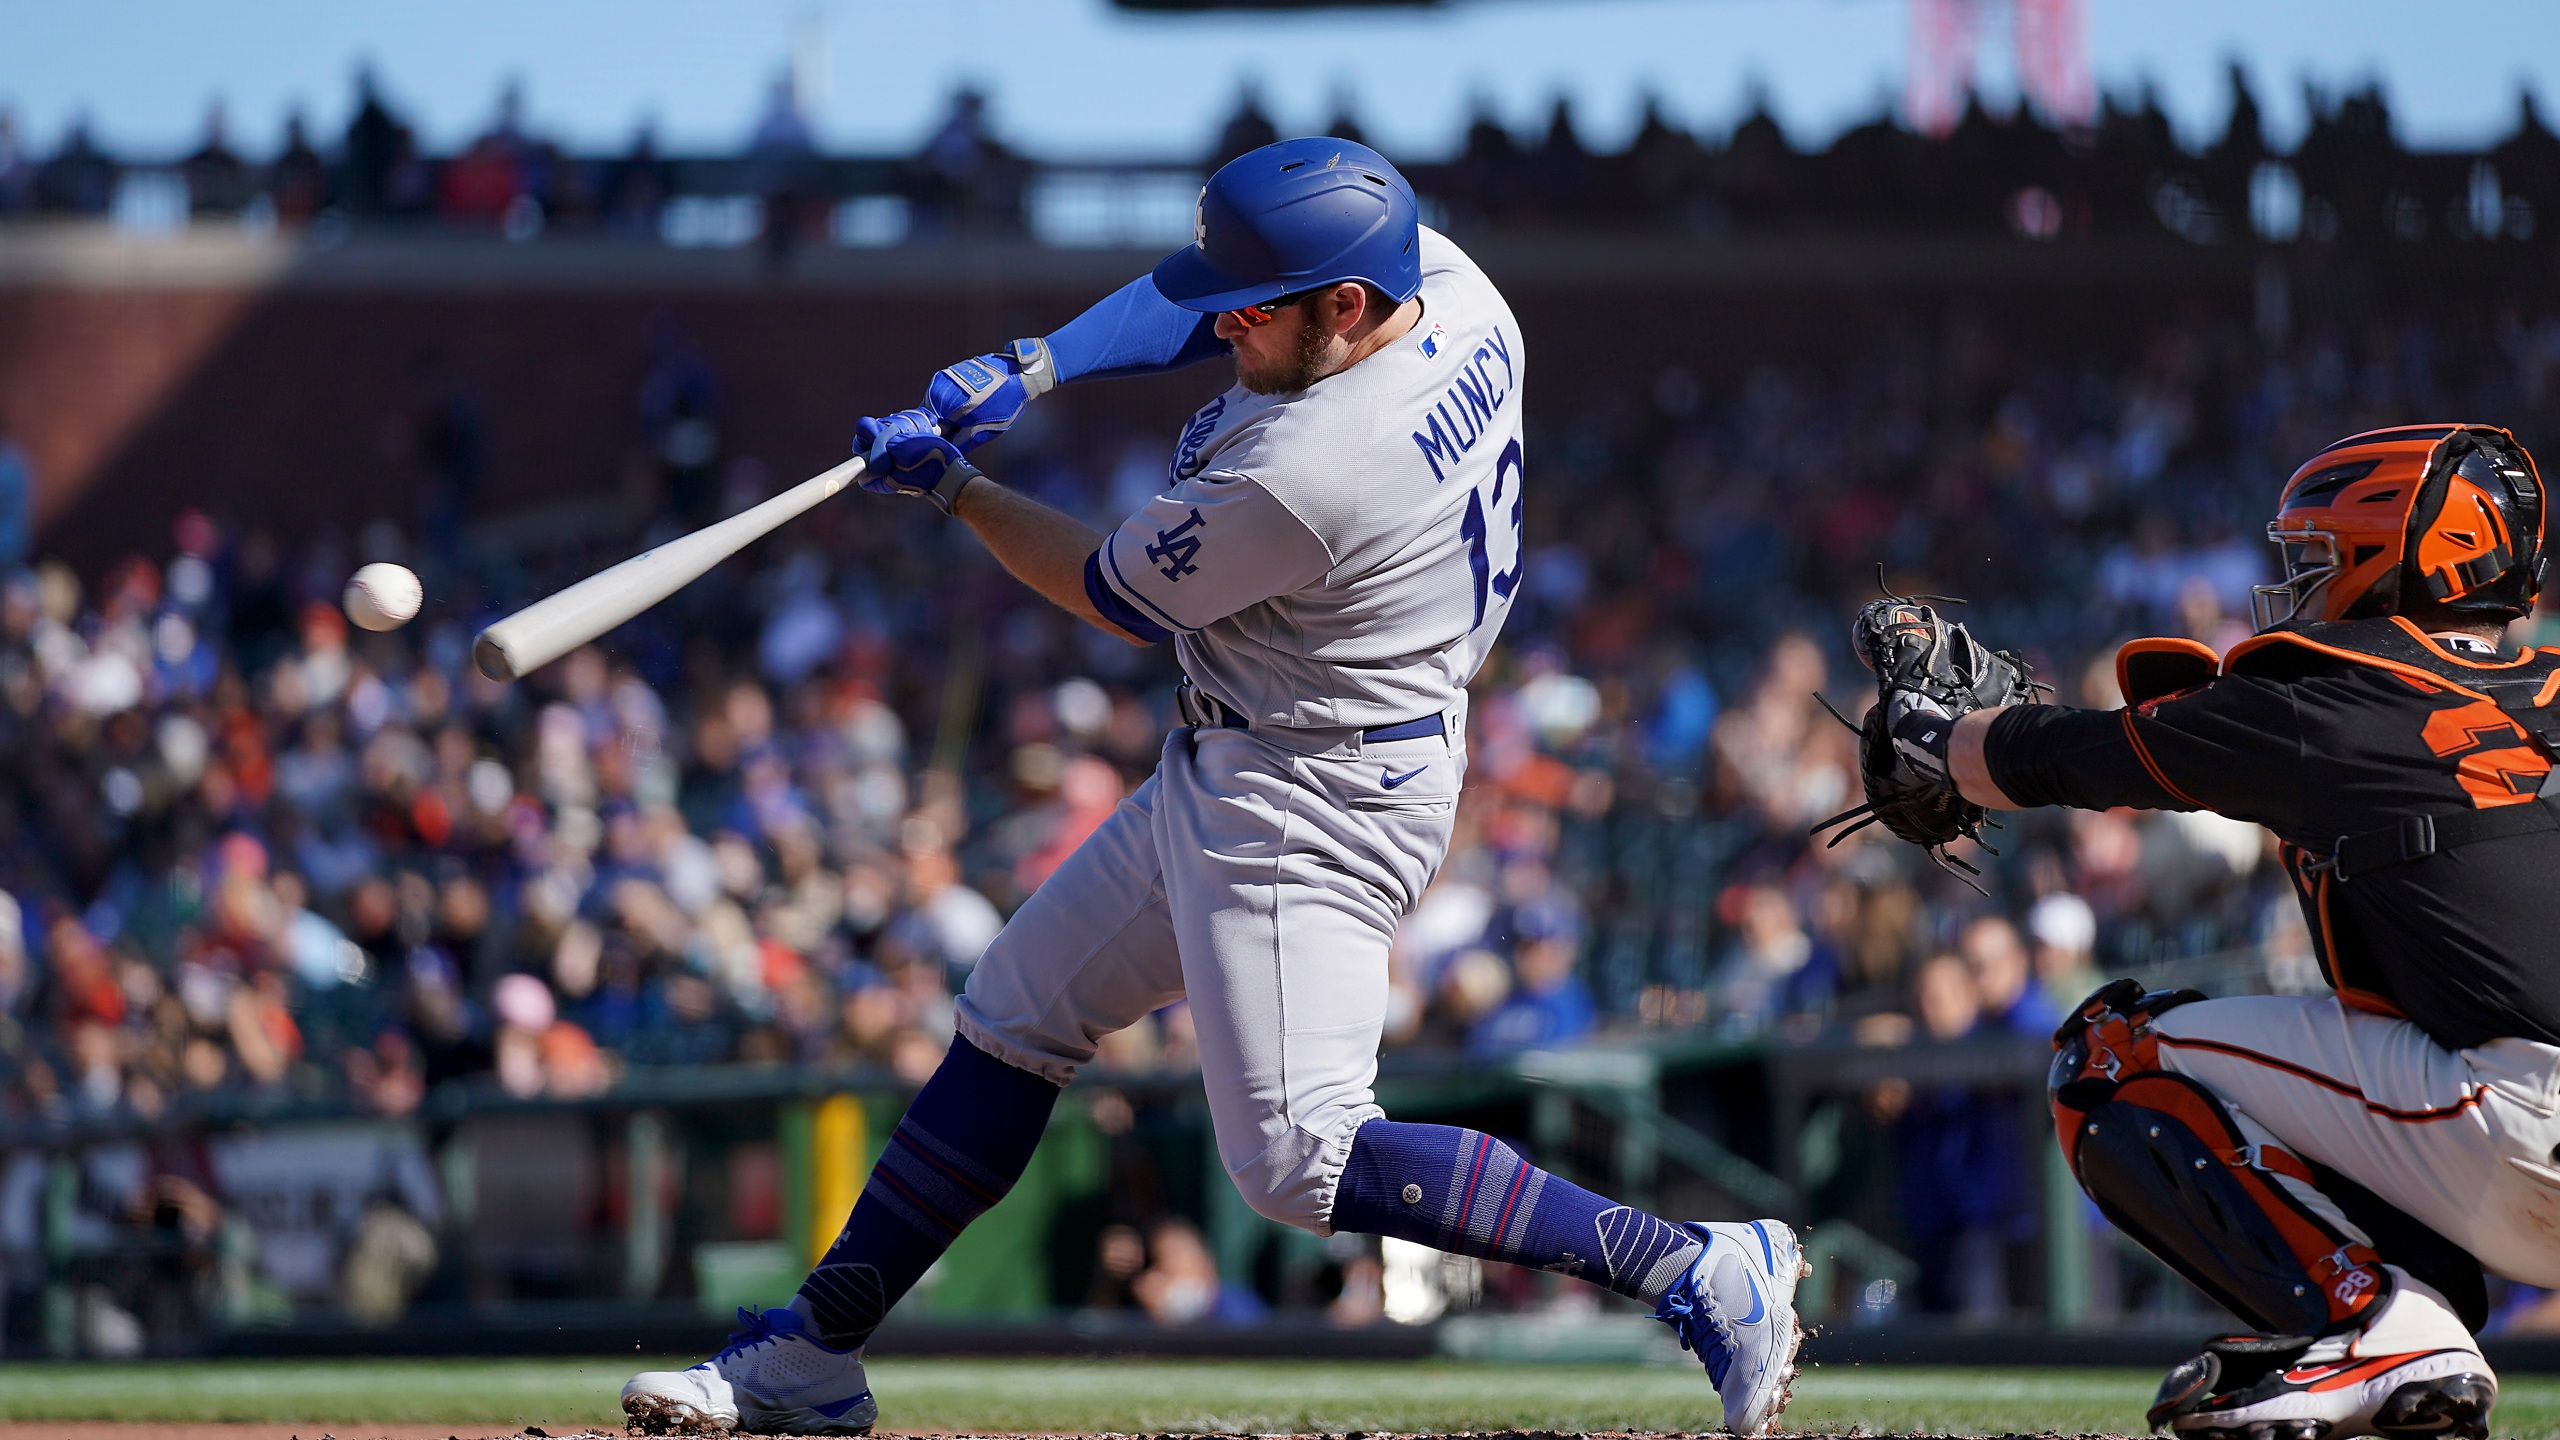 Los Angeles Dodgers' Max Muncy (13) hits a single against the San Francisco Giants during the fourth inning of a baseball game Saturday, May 22, 2021, in San Francisco. (AP Photo/Tony Avelar)